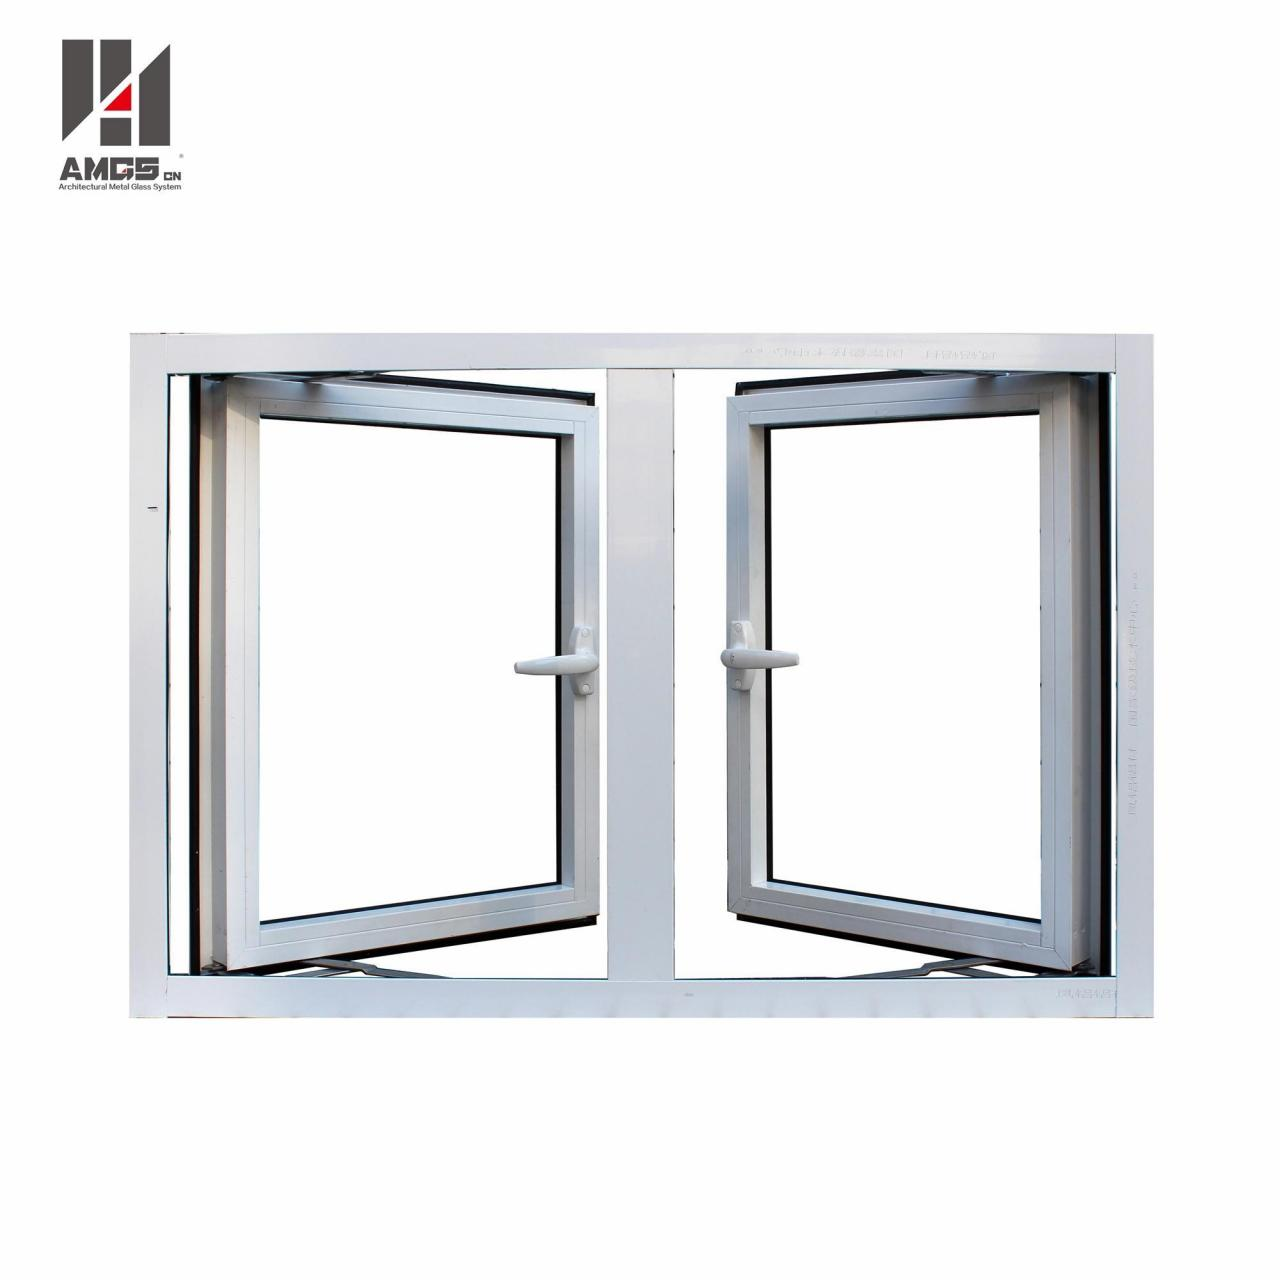 Wholesale Outward-Opening Aluminium Profile Casement Windows For Residential Or Commercial from china suppliers